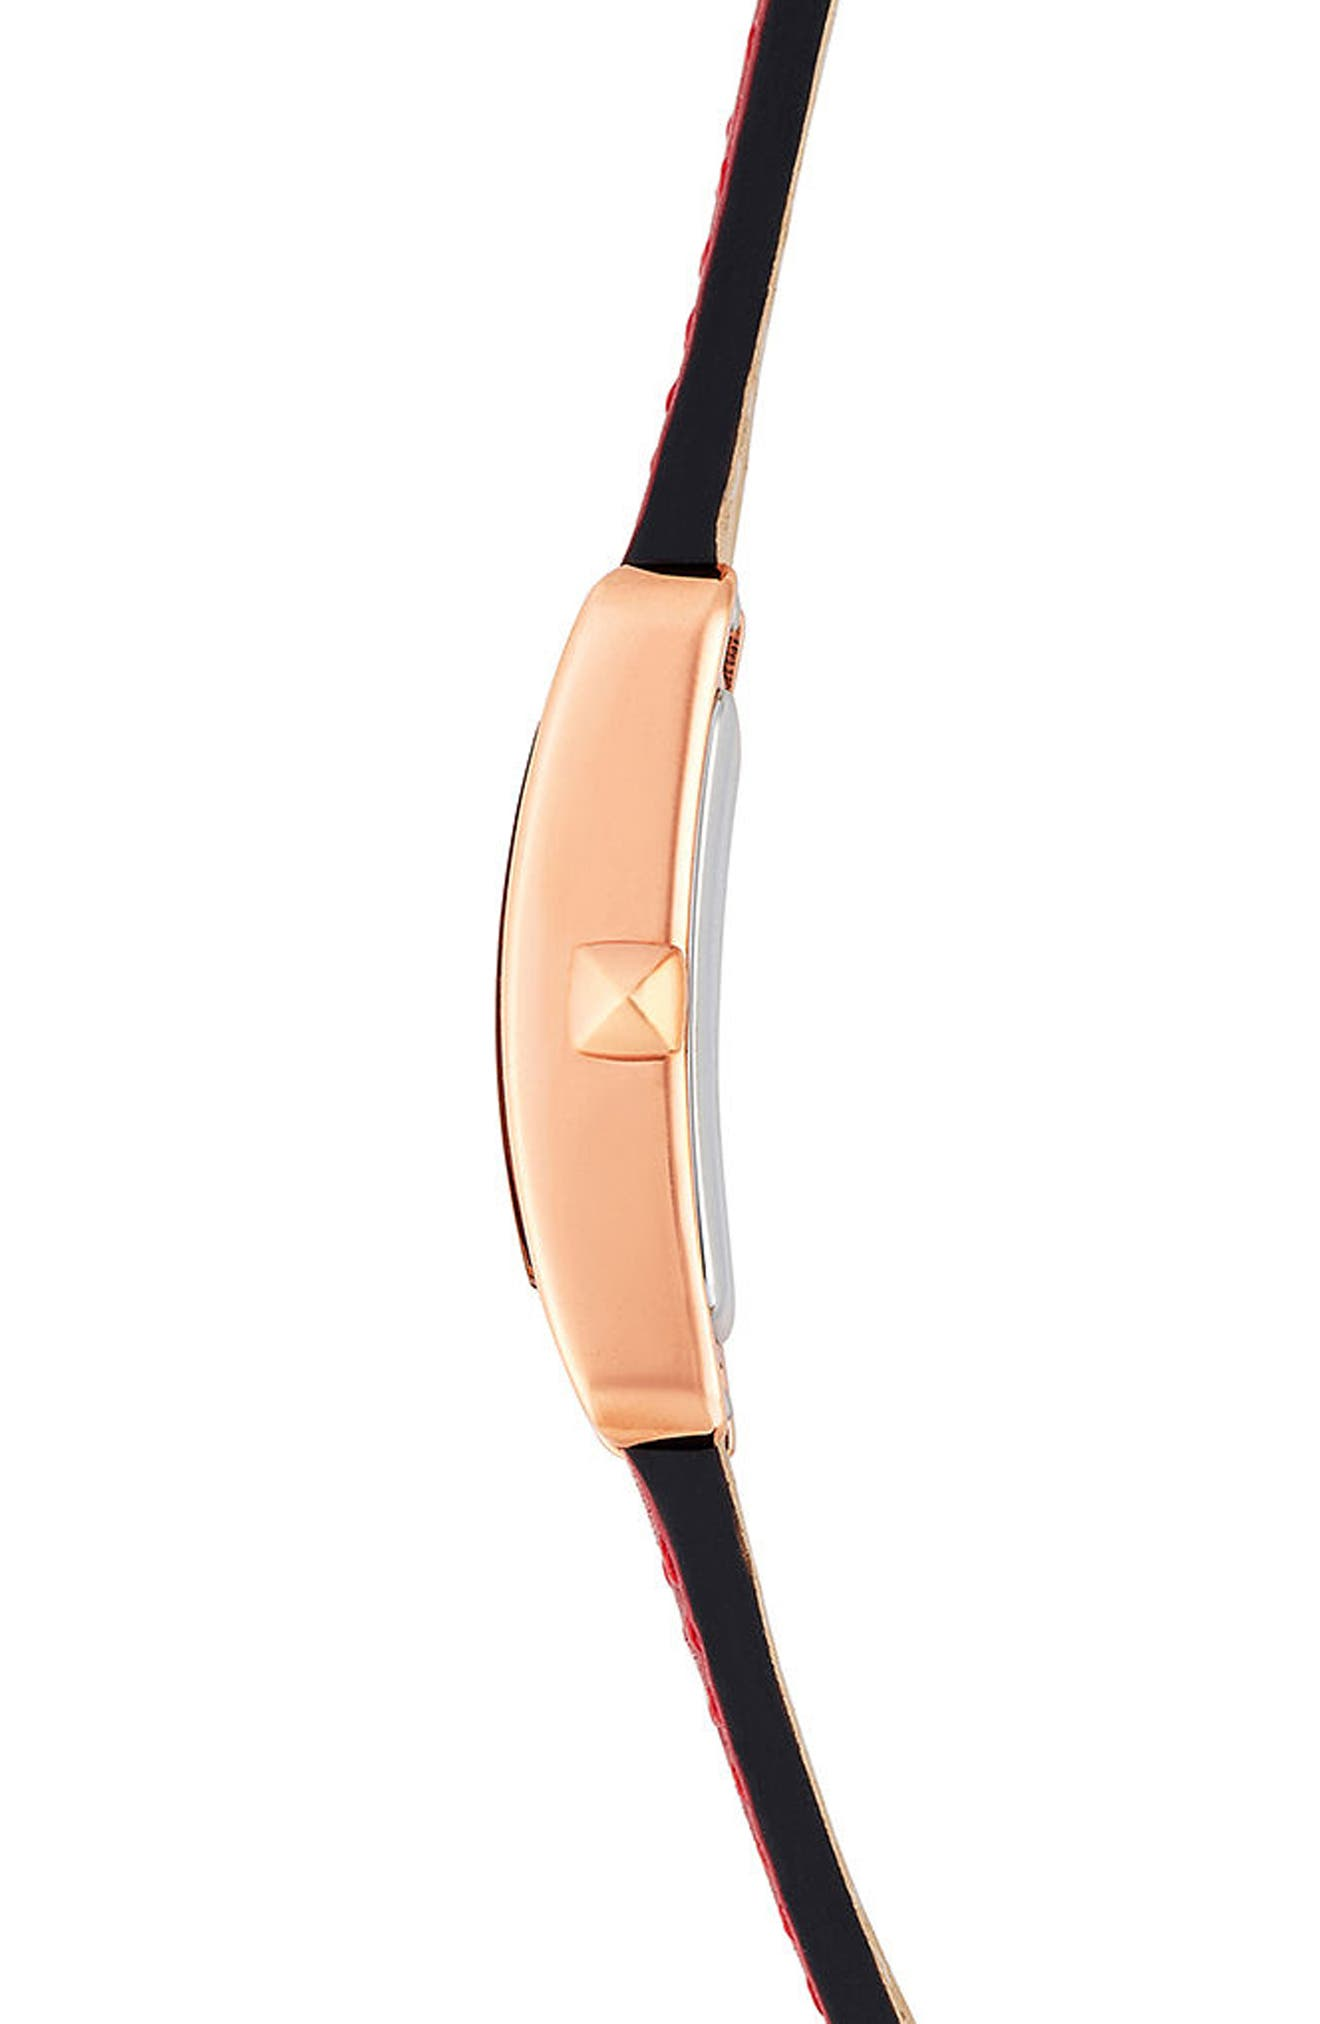 Moment Leather Strap Watch, 19mm x 30mm,                             Alternate thumbnail 2, color,                             Red/ Rose Gold